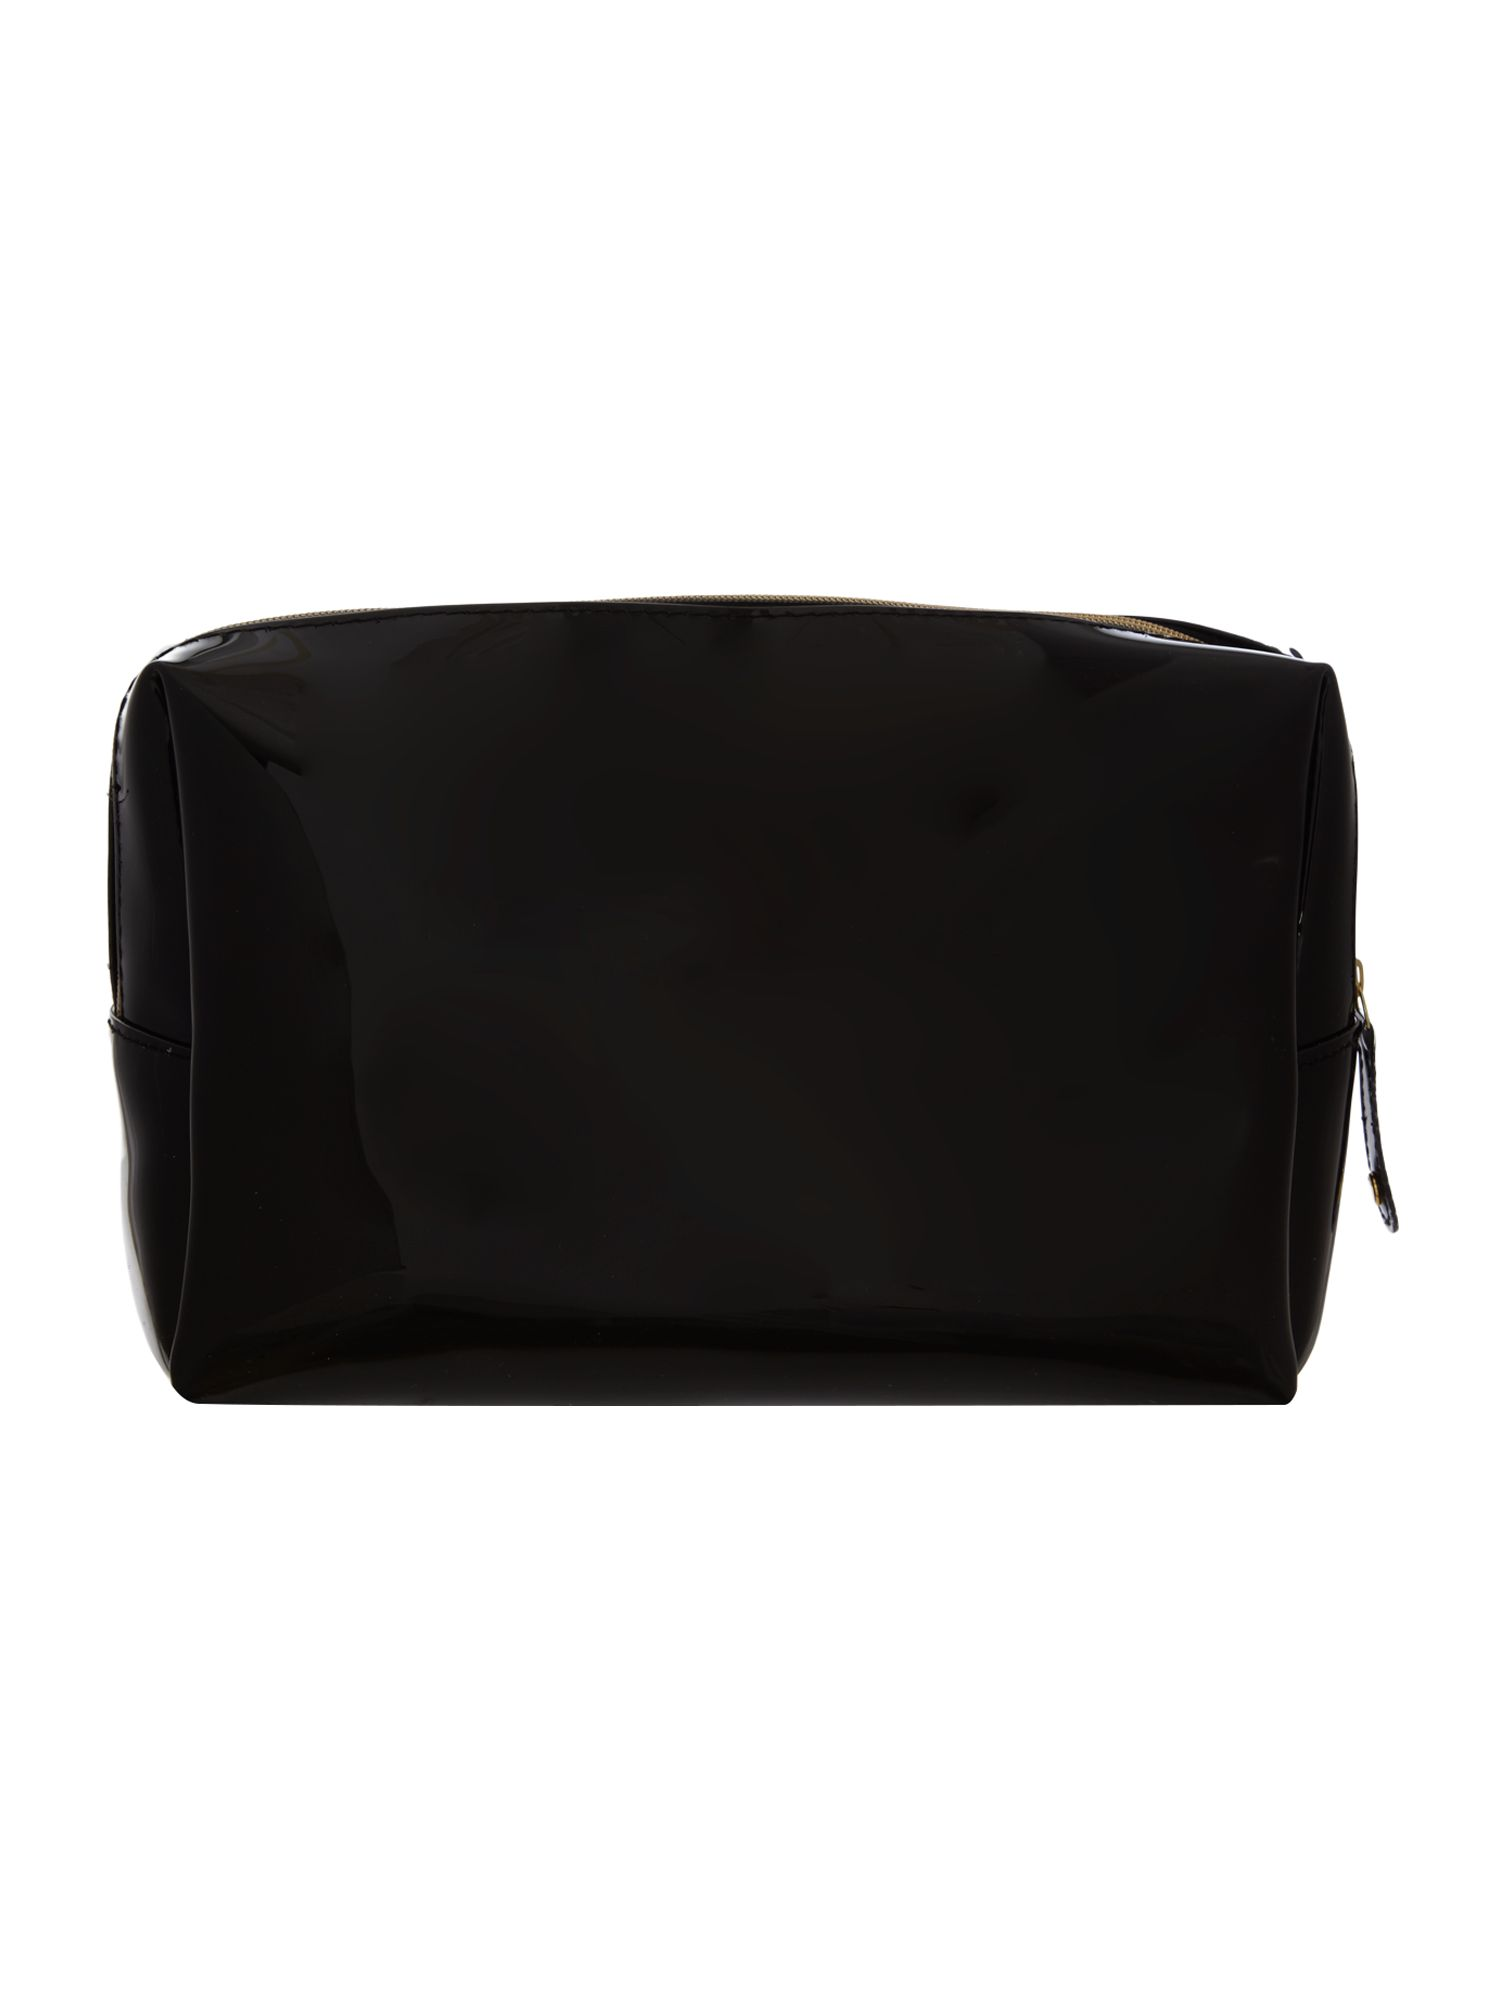 Black large bowcon cosmetic bag